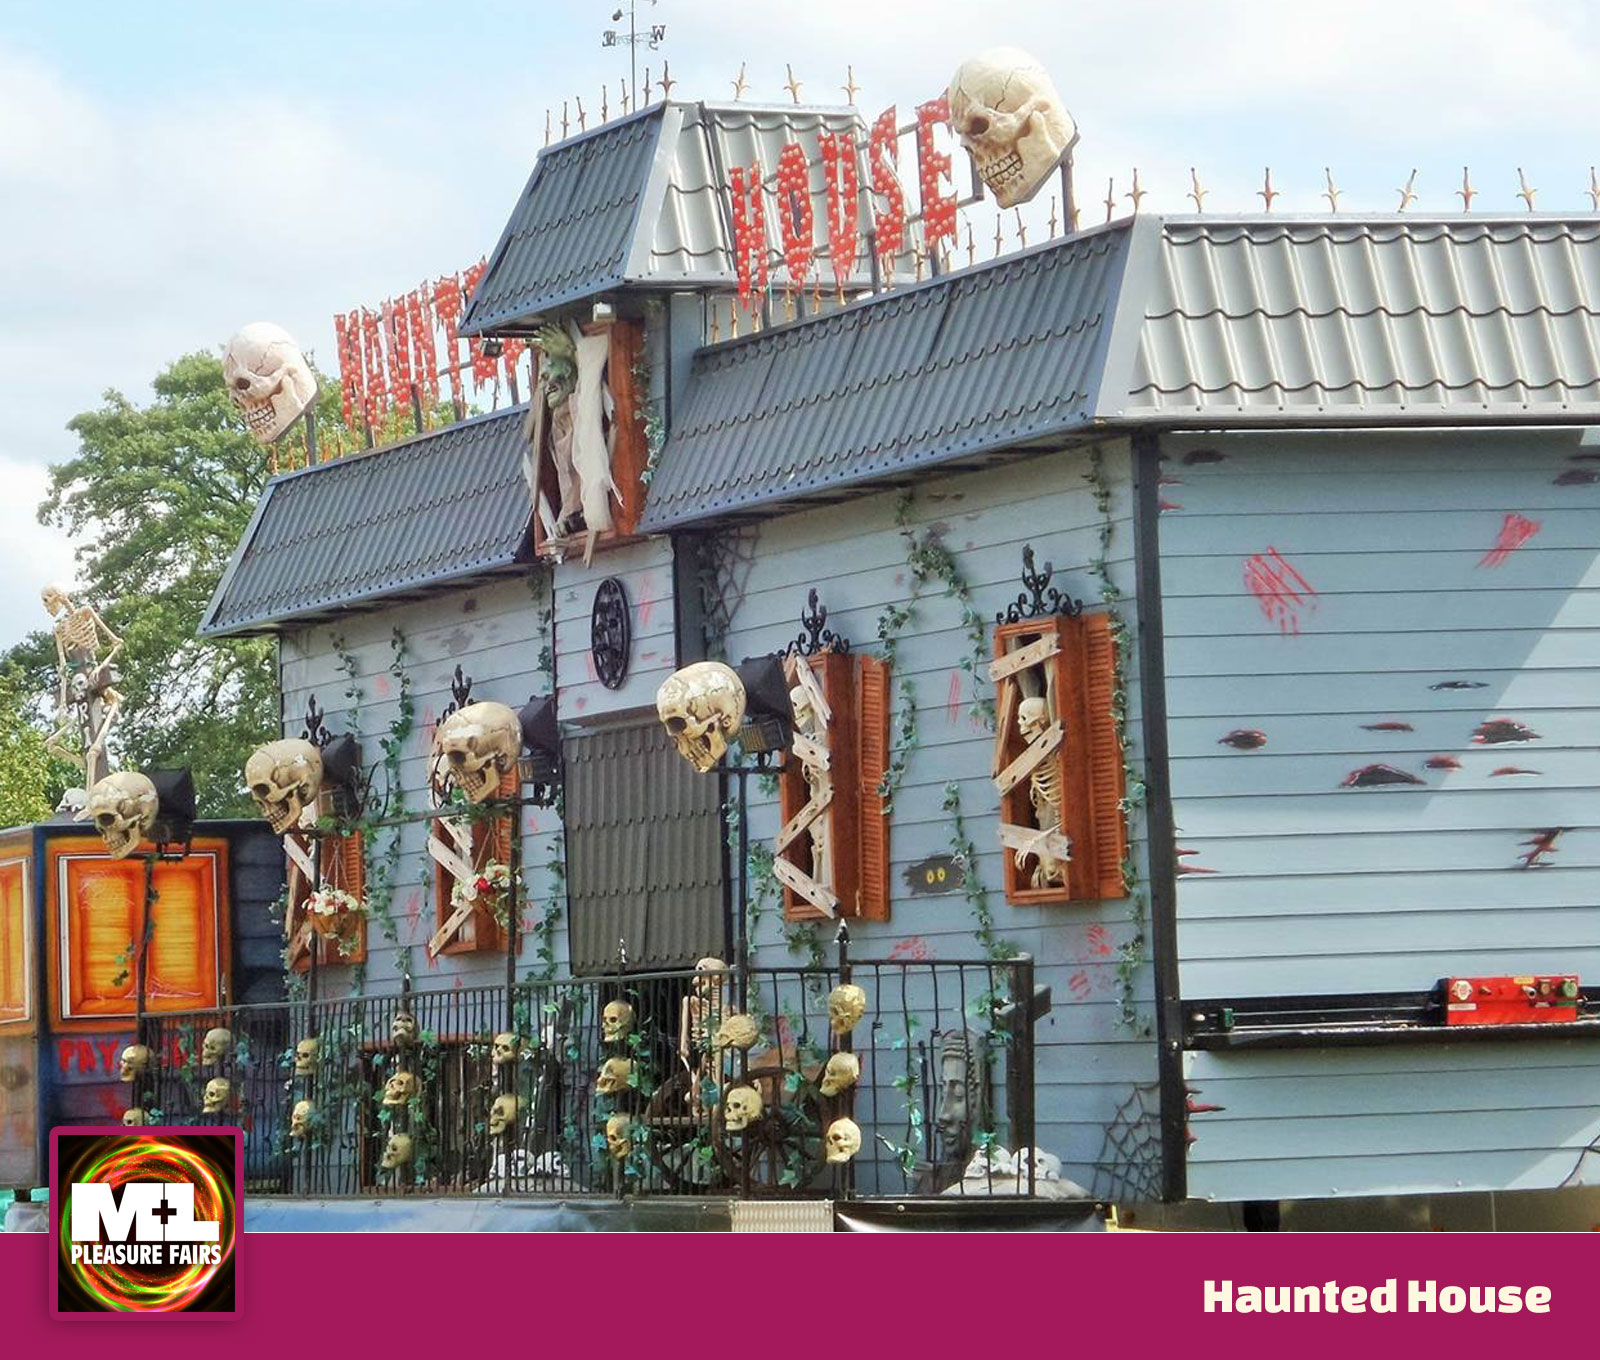 Haunted House Ride Image